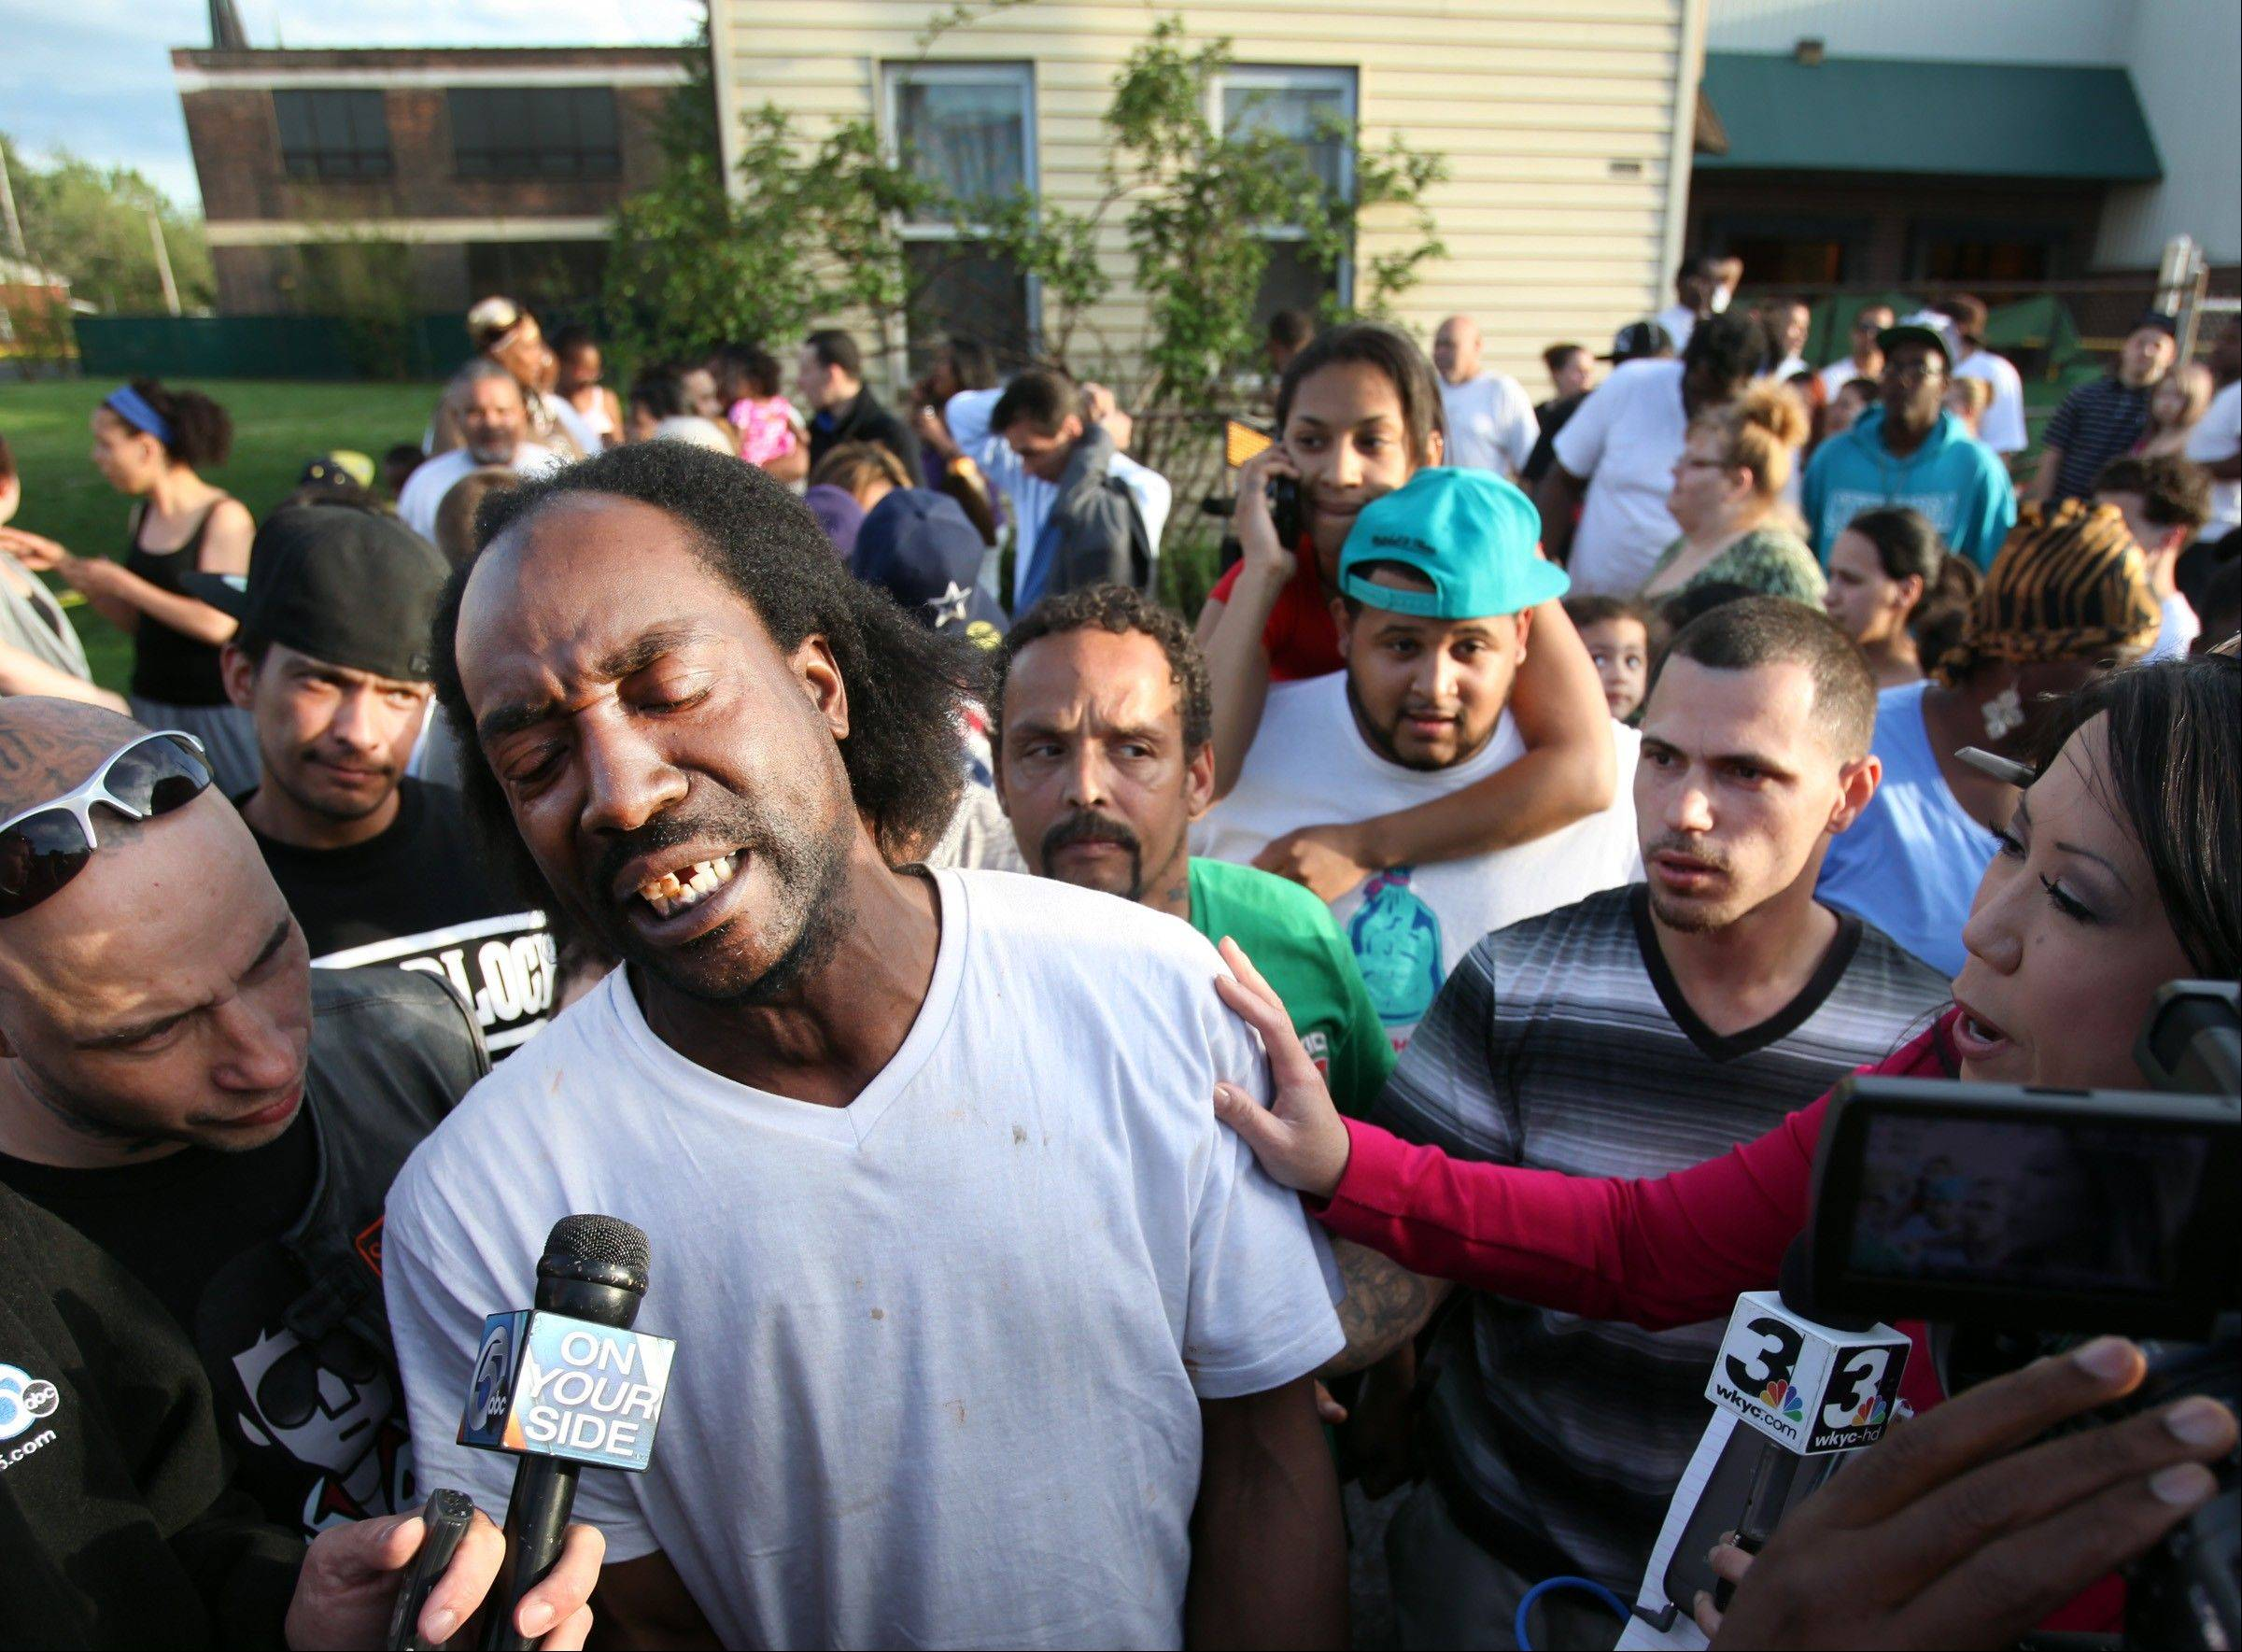 Neighbor Charles Ramsey speaks to media near the home where three missing women were rescued in Cleveland, on Monday, May 6, 2013. Ramsey heard screaming Monday and saw Berry, whom he didn't recognize, at a door that would open only enough to fit a hand through. He said she was trying desperately to get outside and pleaded for help to reach police.